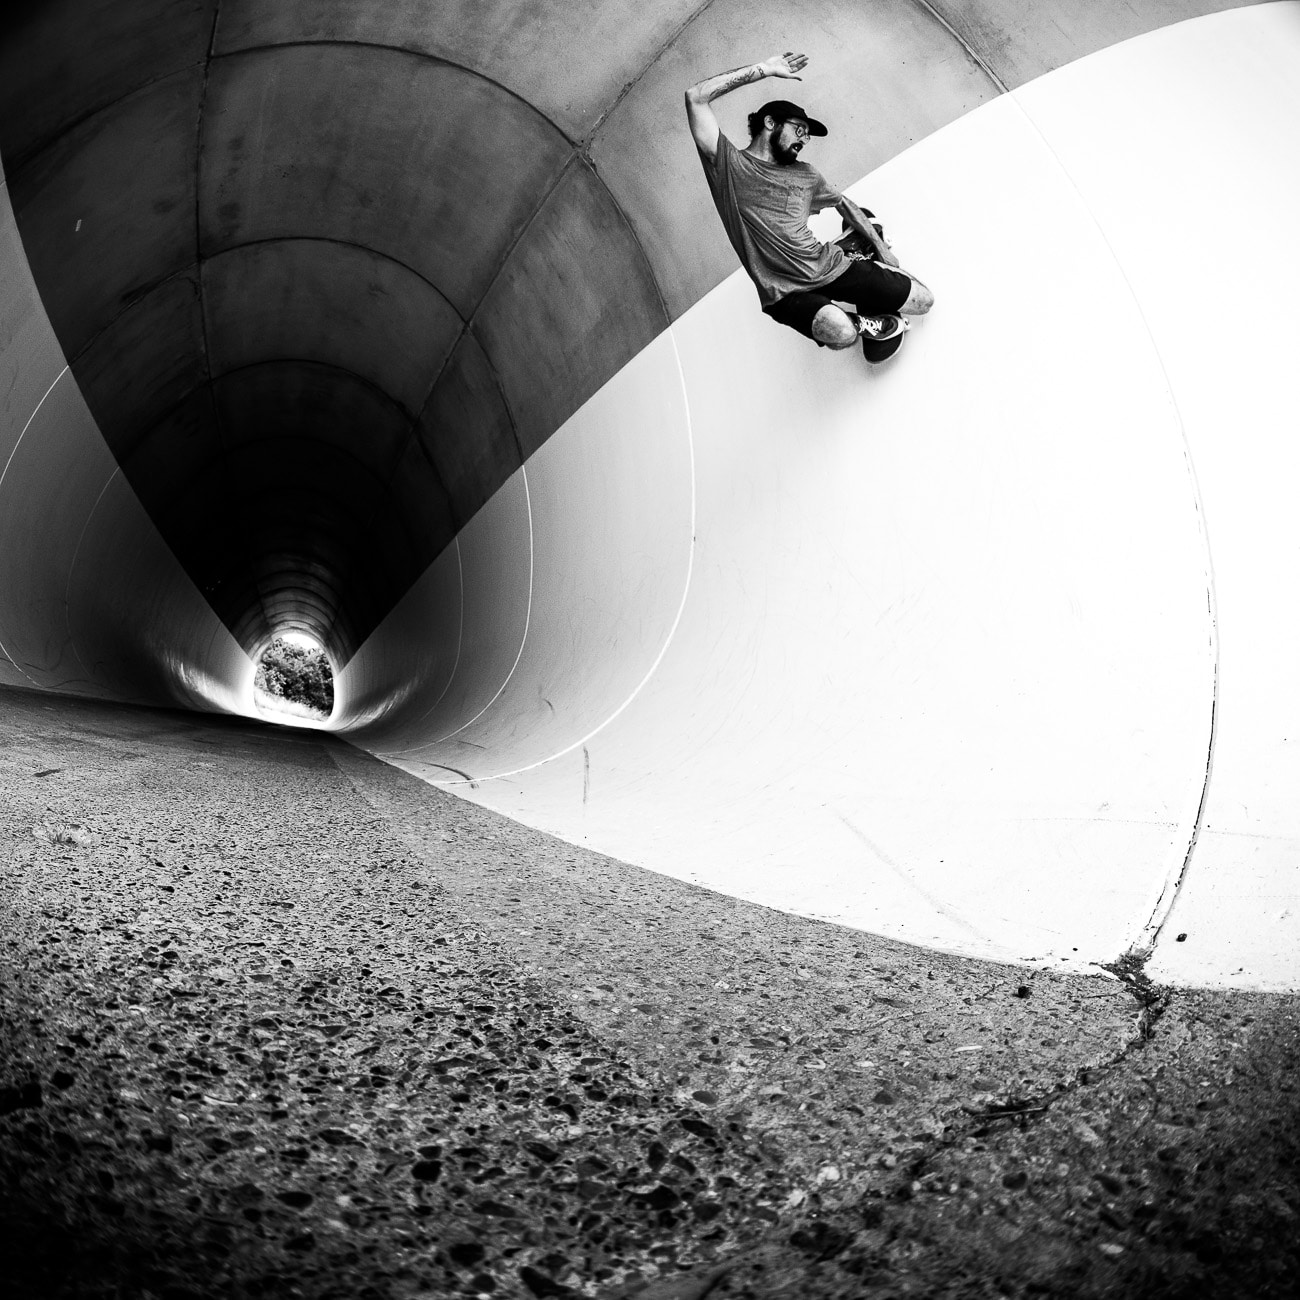 Luxemburg-irregularskatemag-tour-46